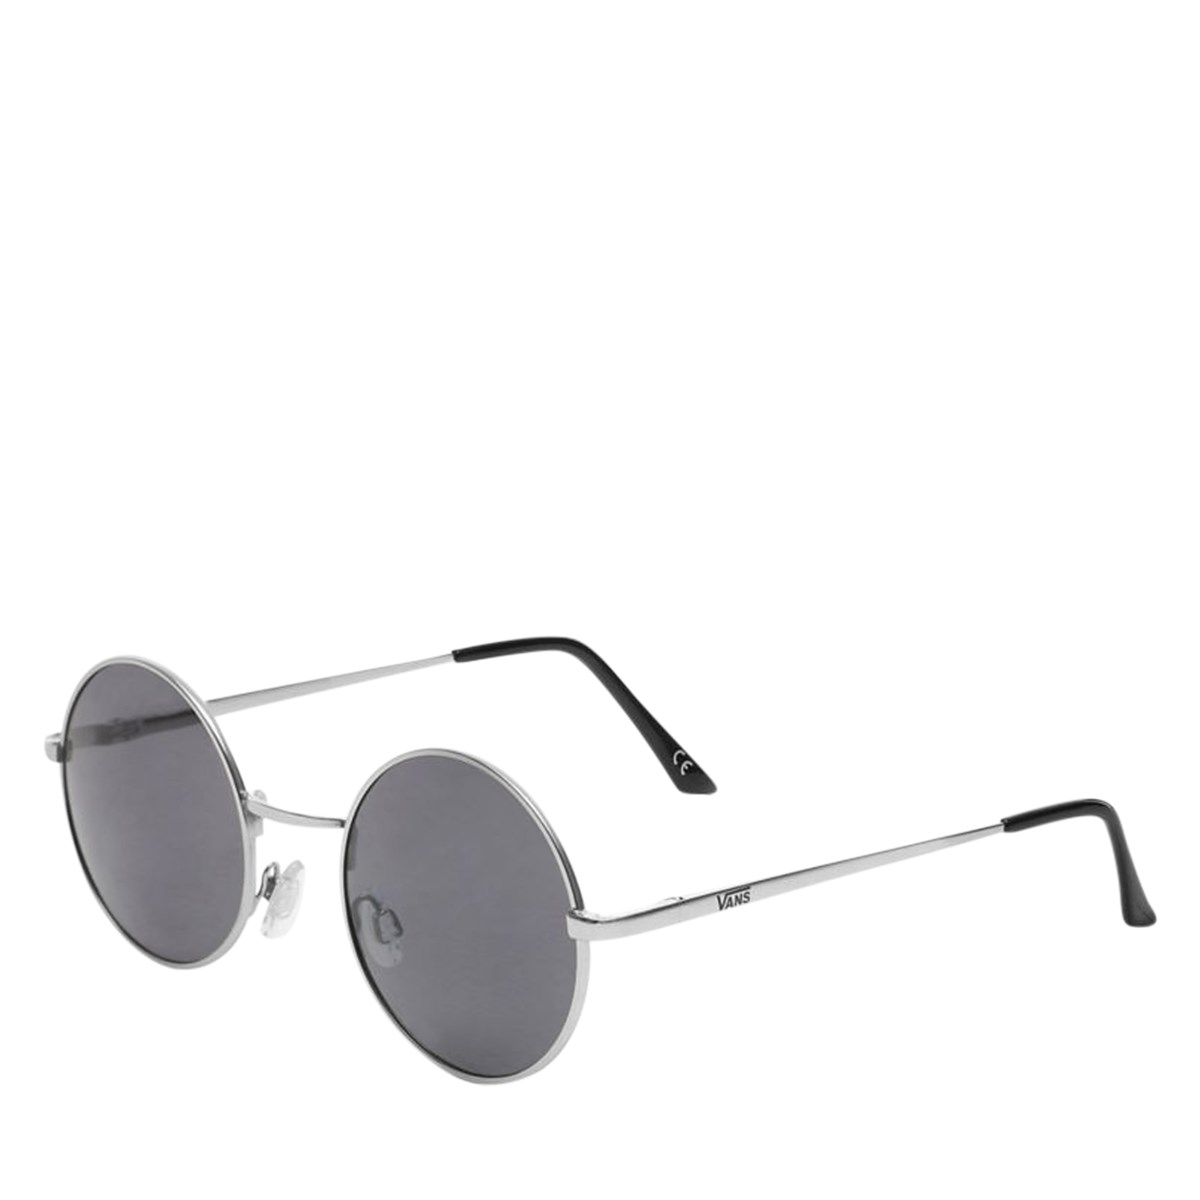 696c34ab7e6 Gundry Shade Sunglasses in Silver | Little Burgundy